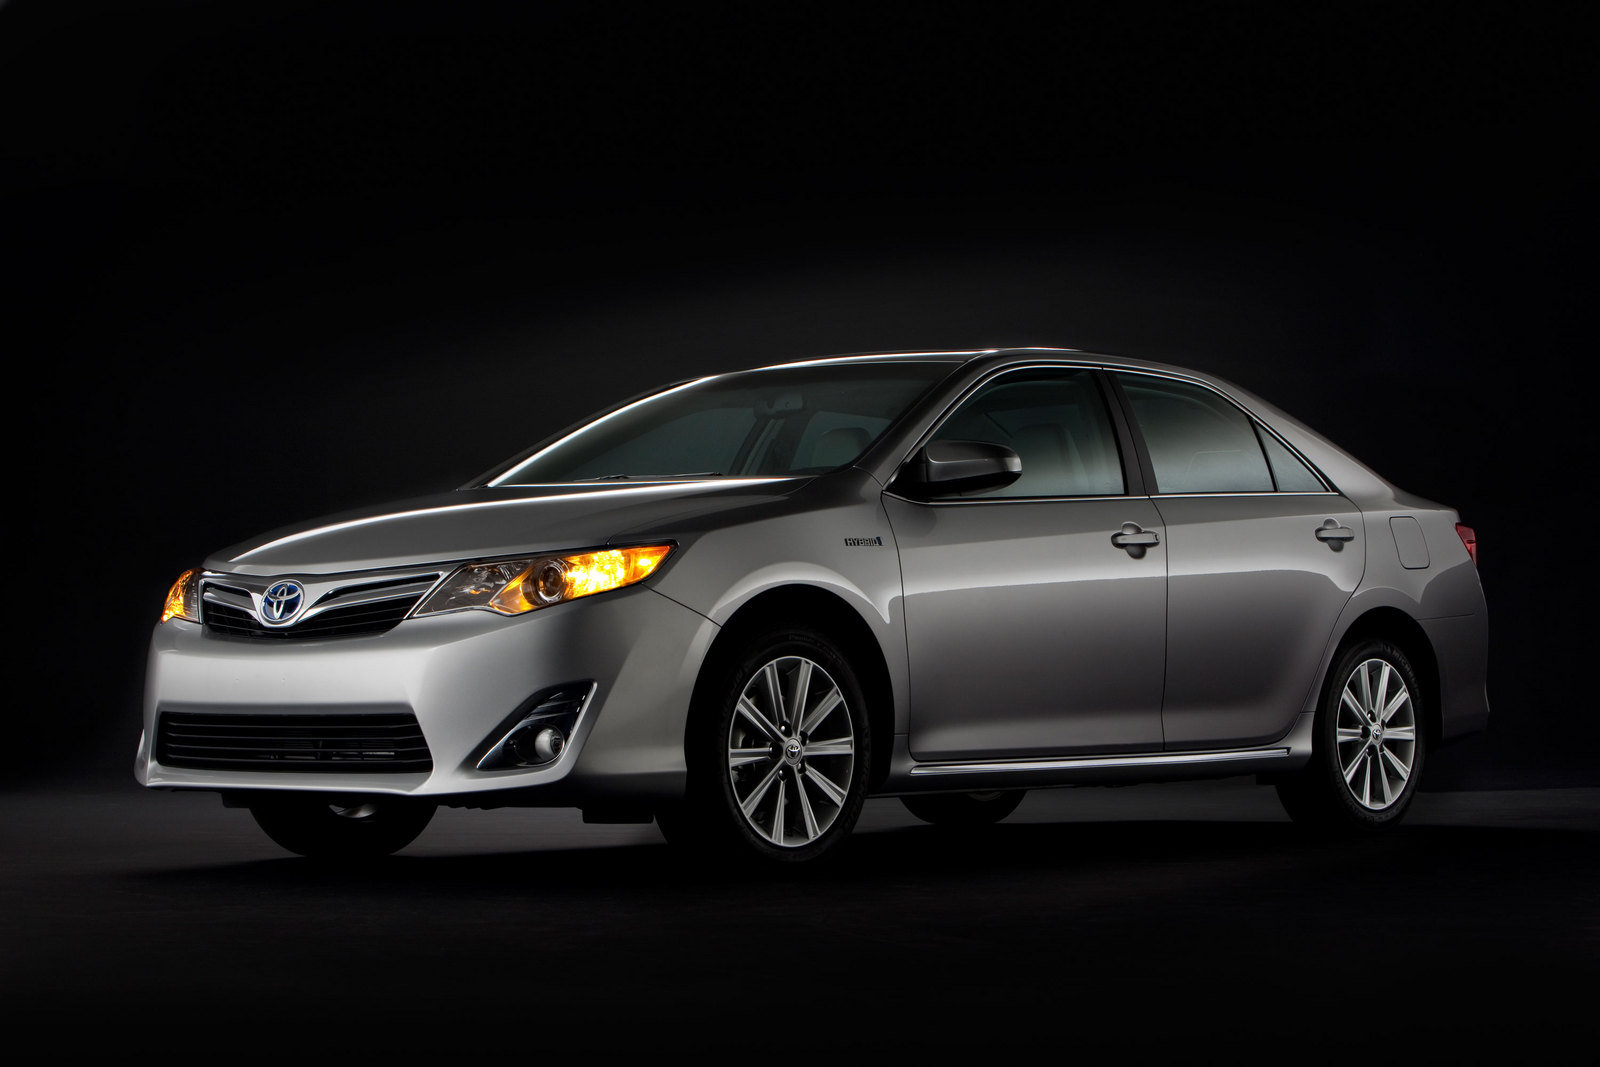 2013 toyota camry hybrid review gallery top speed. Black Bedroom Furniture Sets. Home Design Ideas